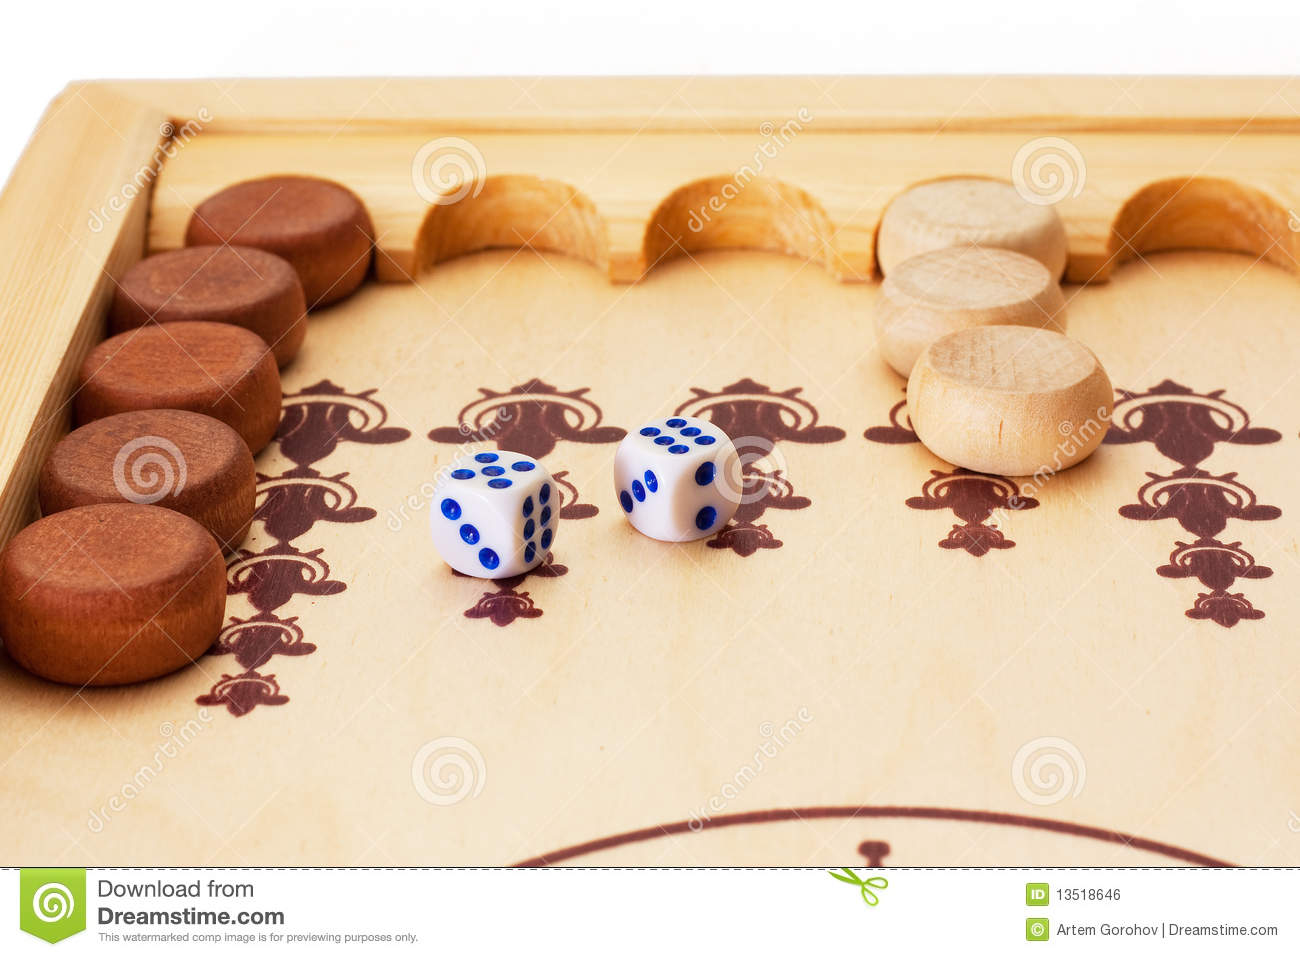 how to play backgammon in hindi